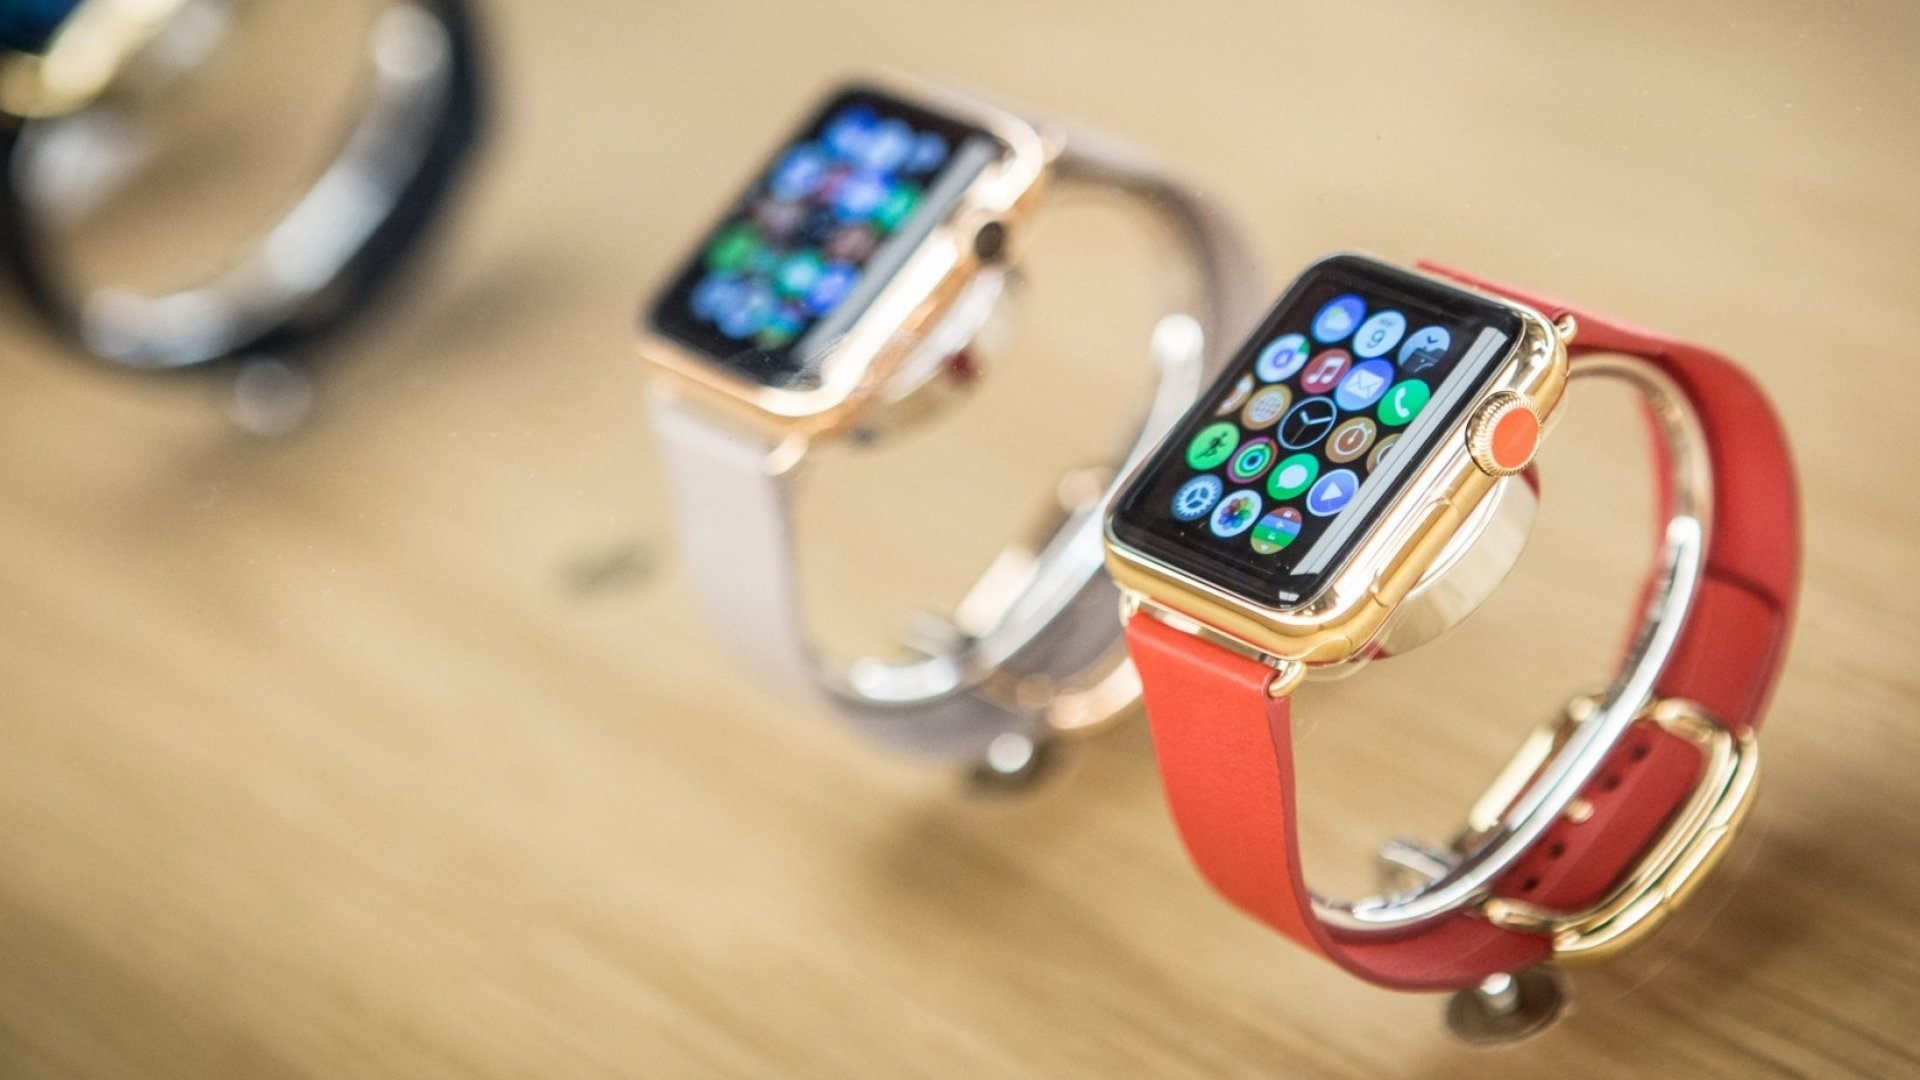 Holiday Gifts Can Predict the Future. And the Future Could Be an Apple Watch. Really